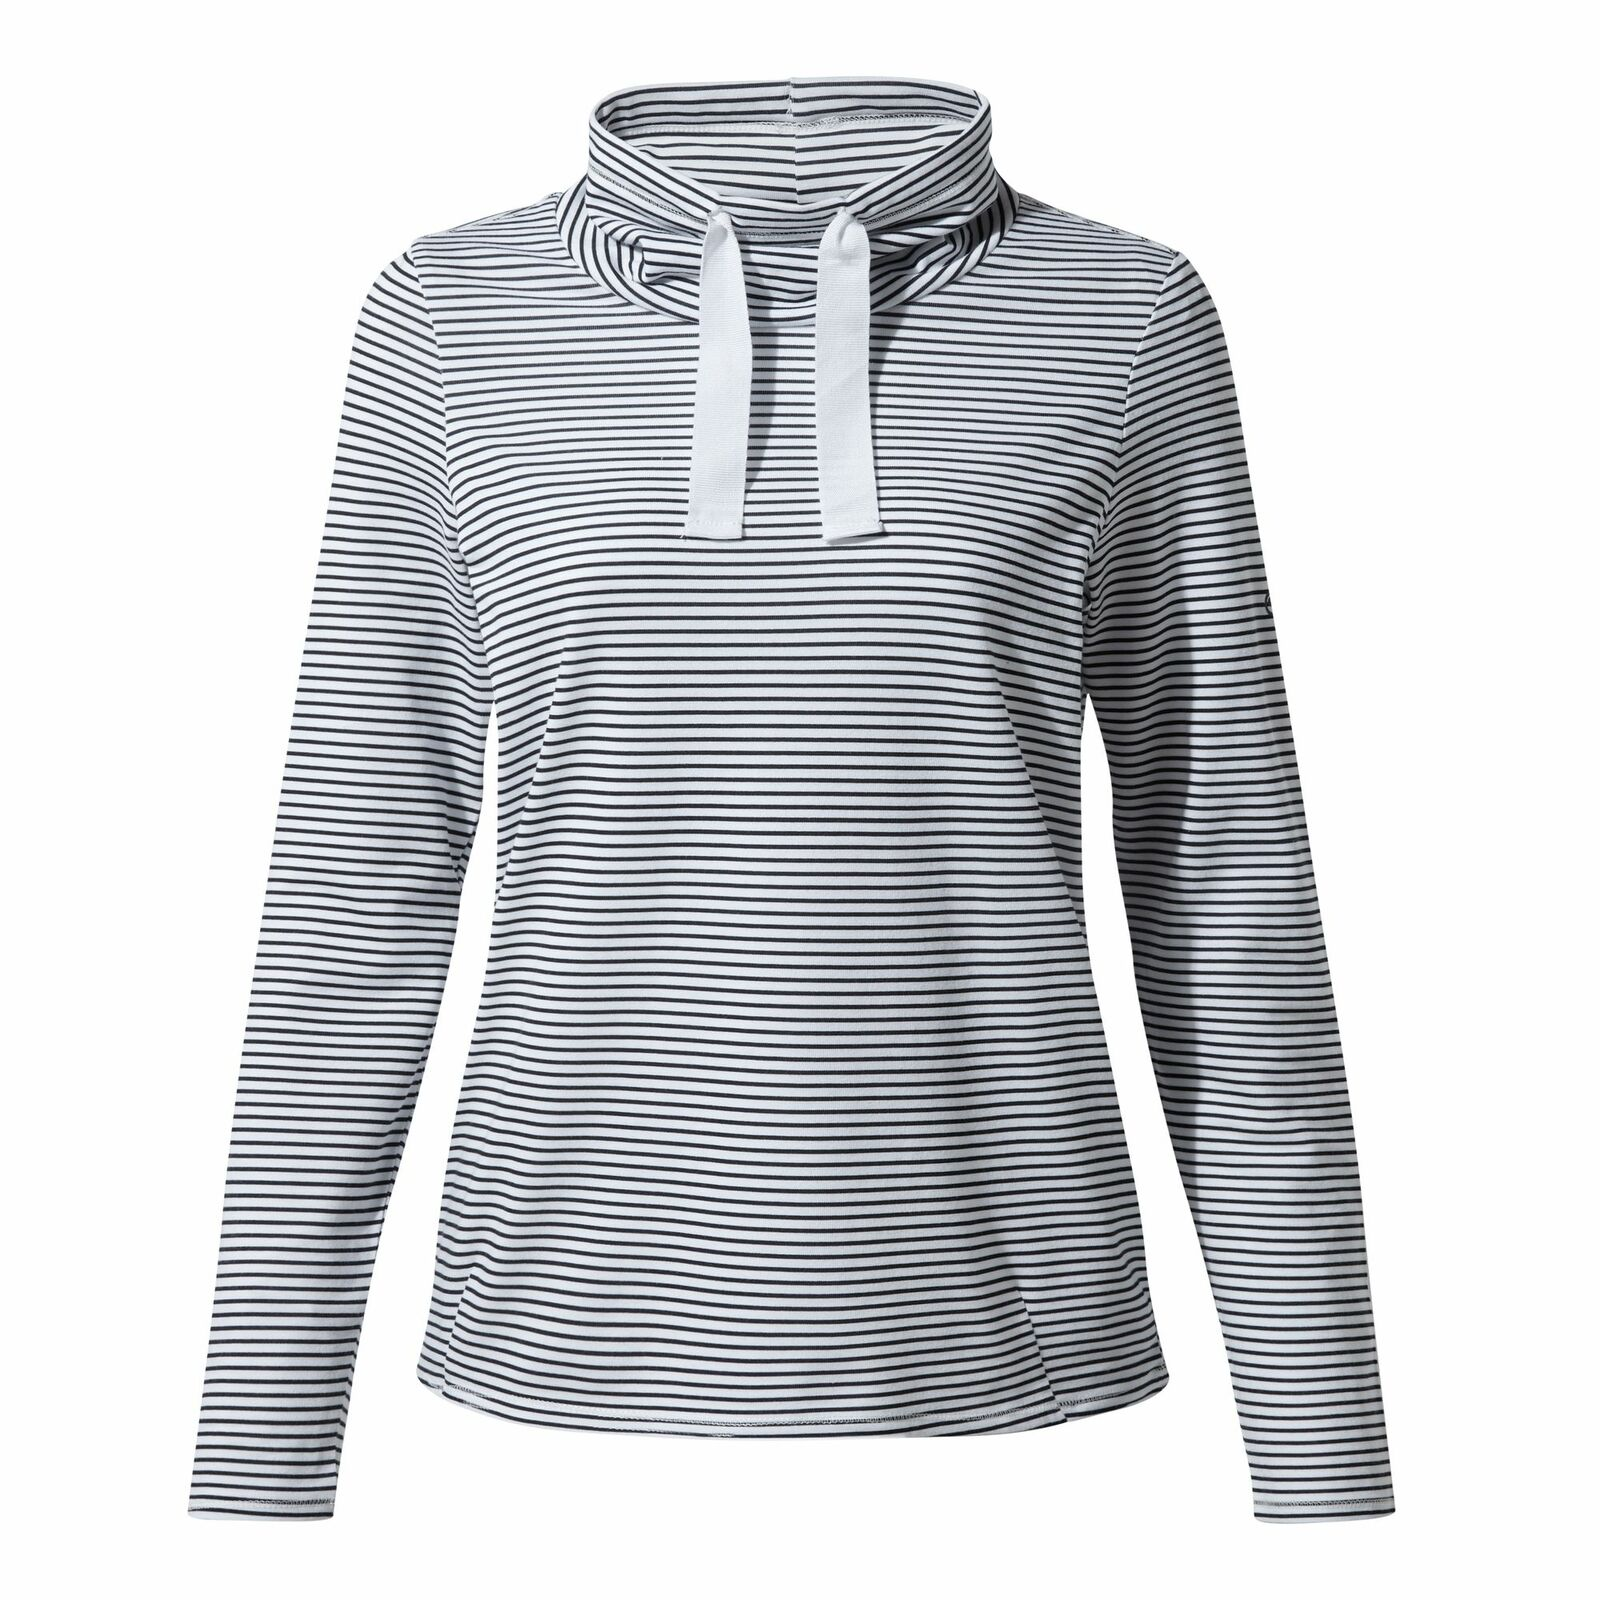 Croghppers NosiLife Adelina damen Long Sleeved Top Travel Insect Repellent